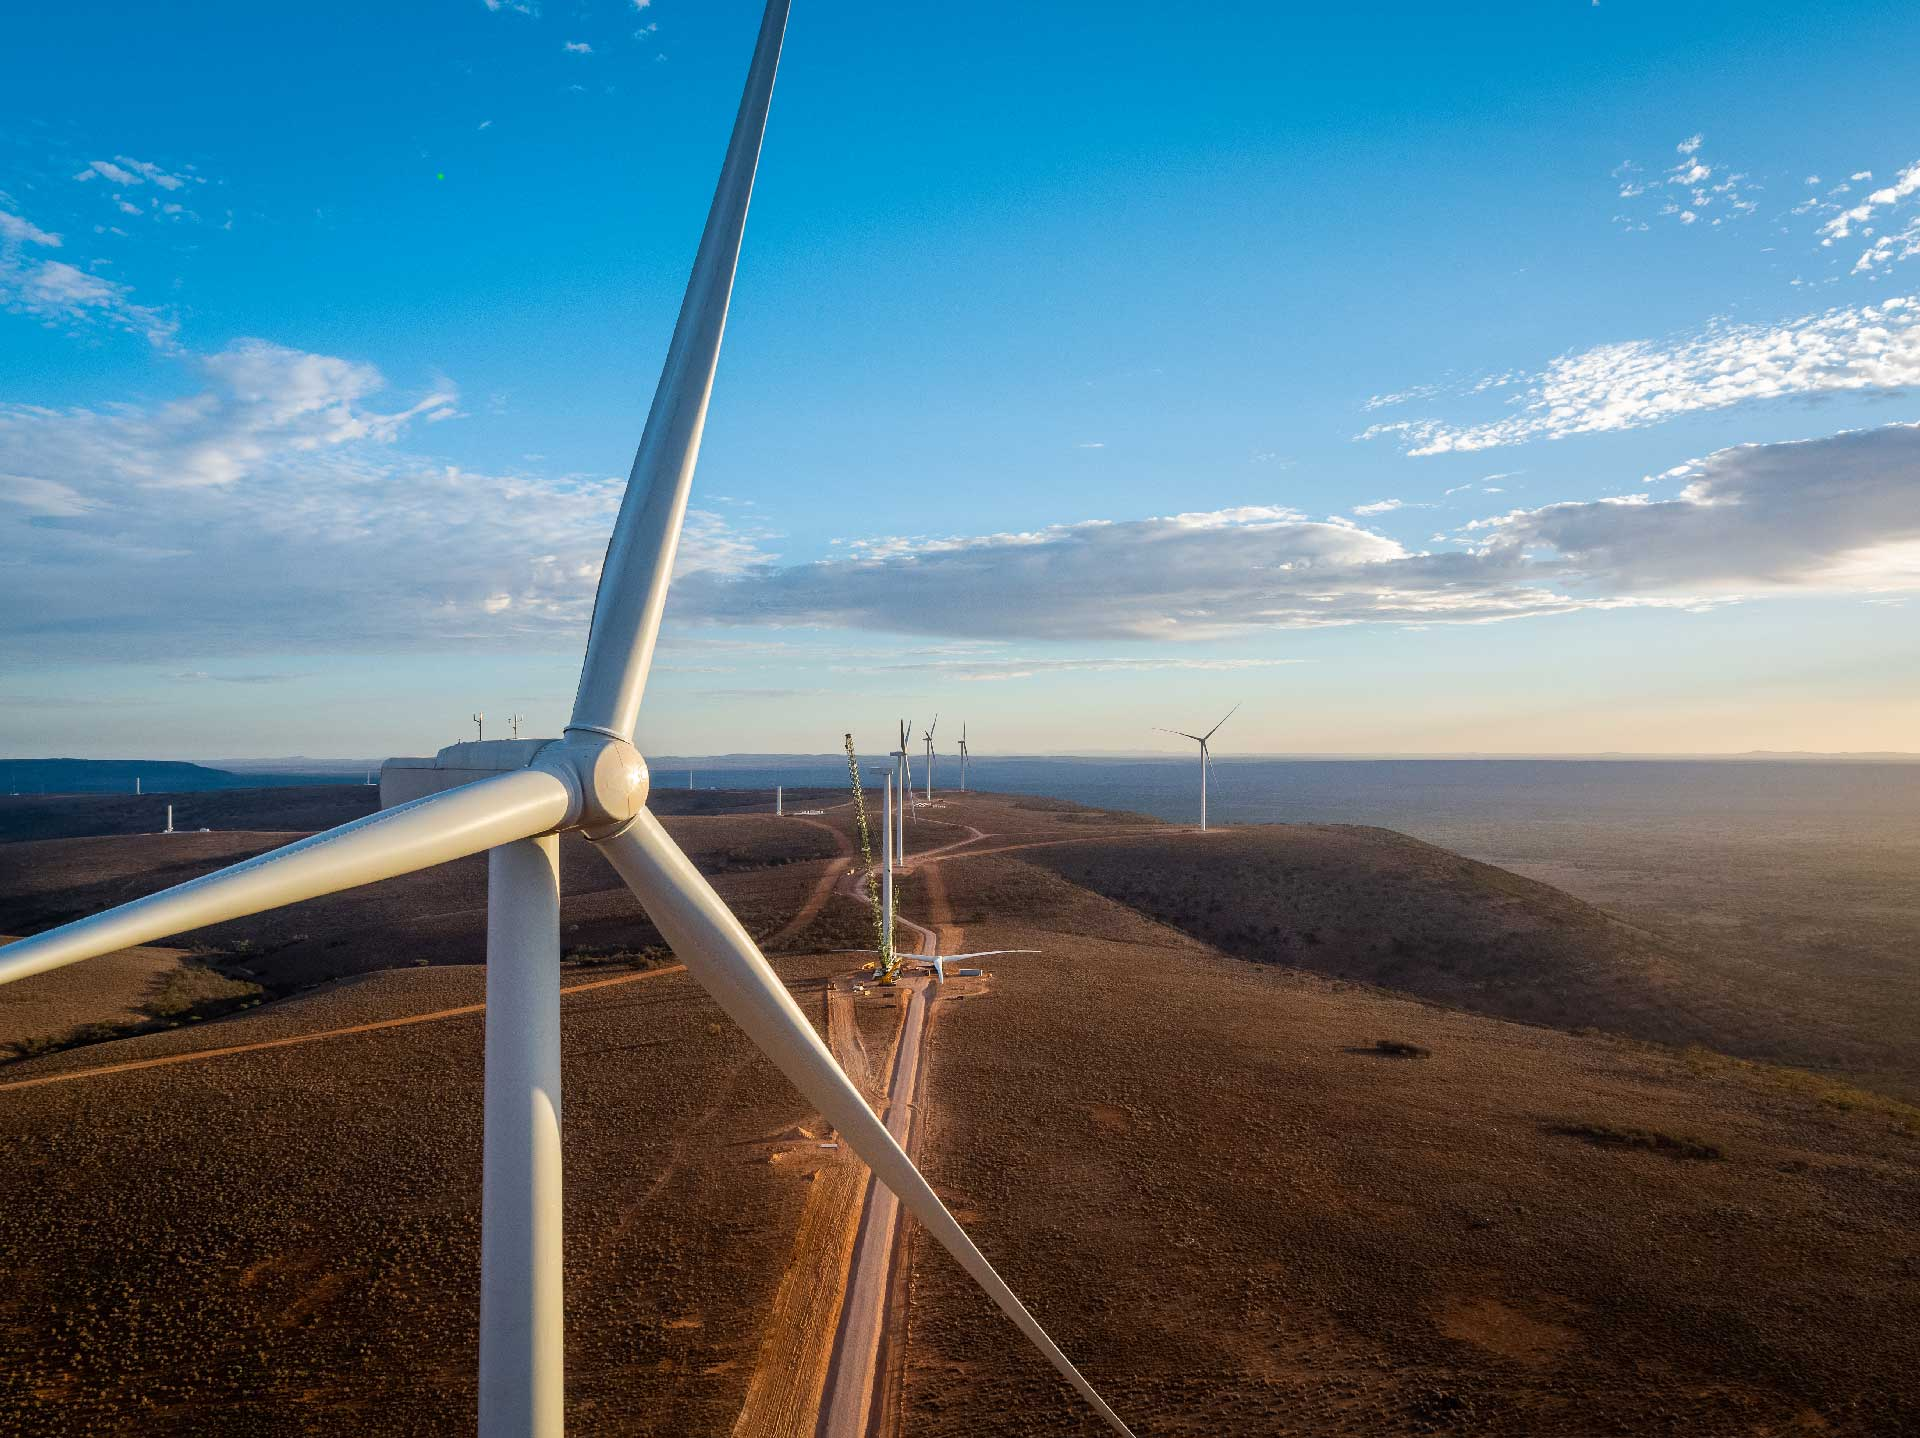 First wind turbine generators in operation